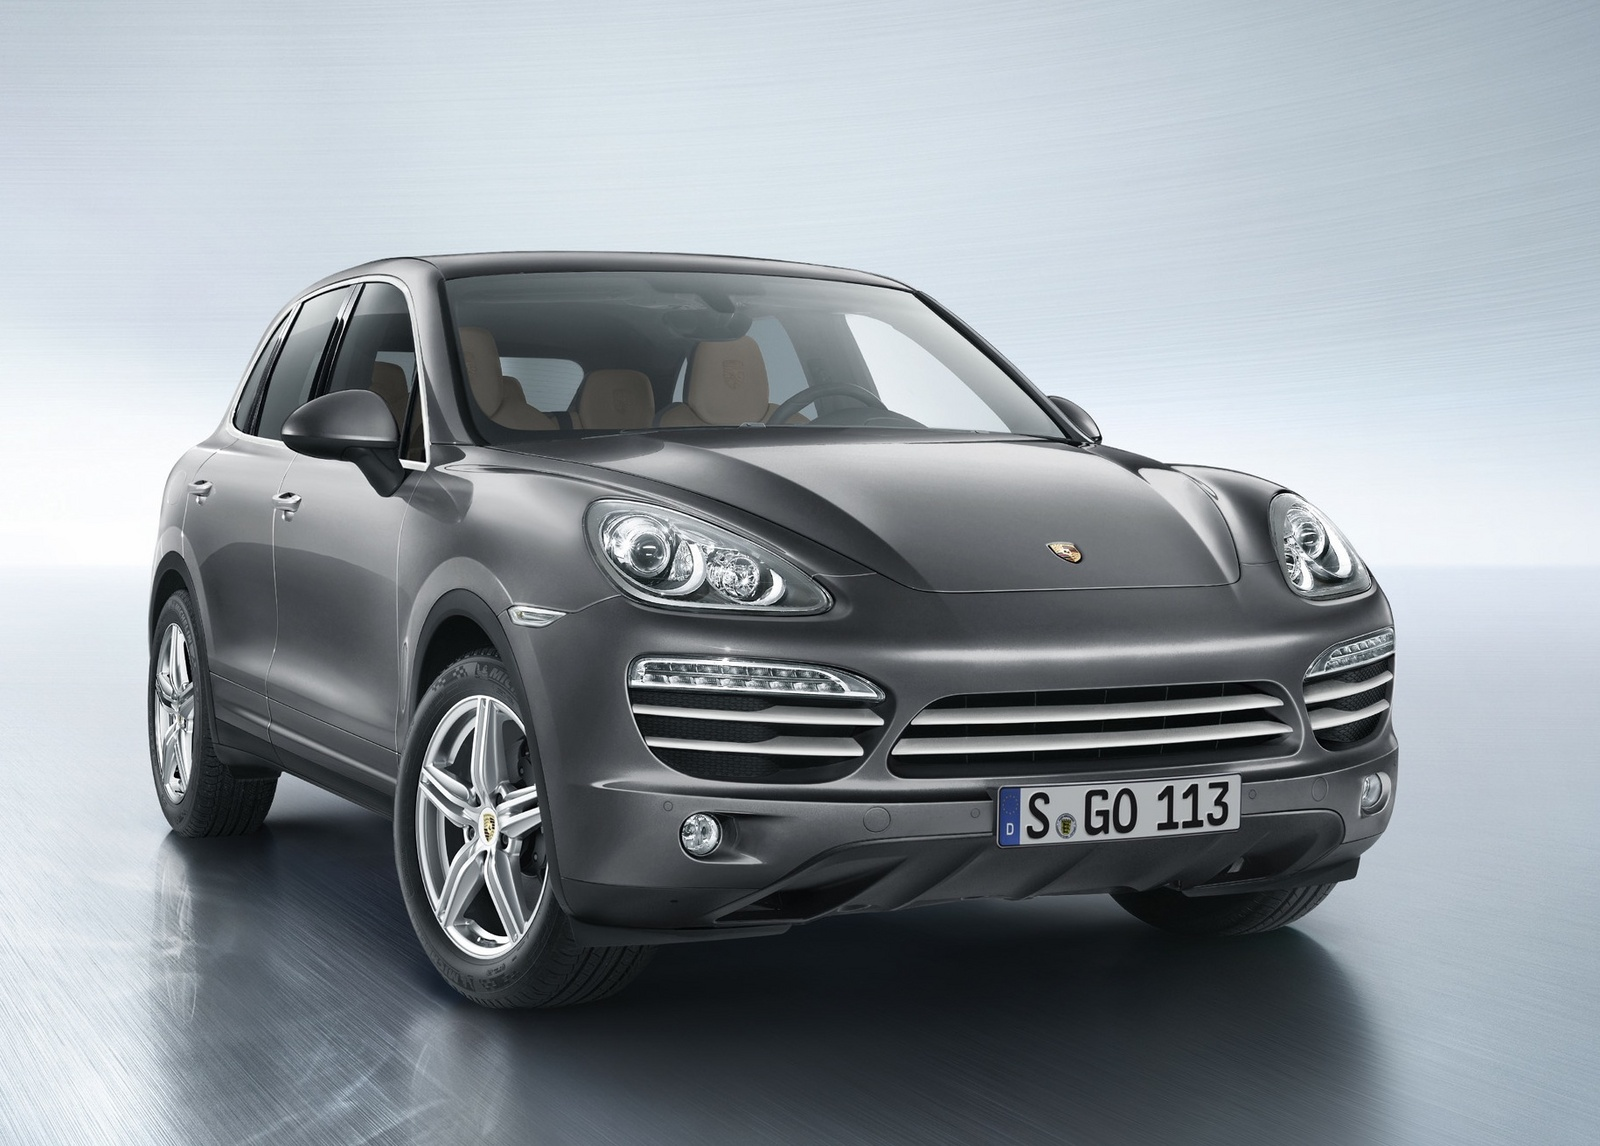 new 2015 2016 porsche cayenne for sale cargurus. Black Bedroom Furniture Sets. Home Design Ideas